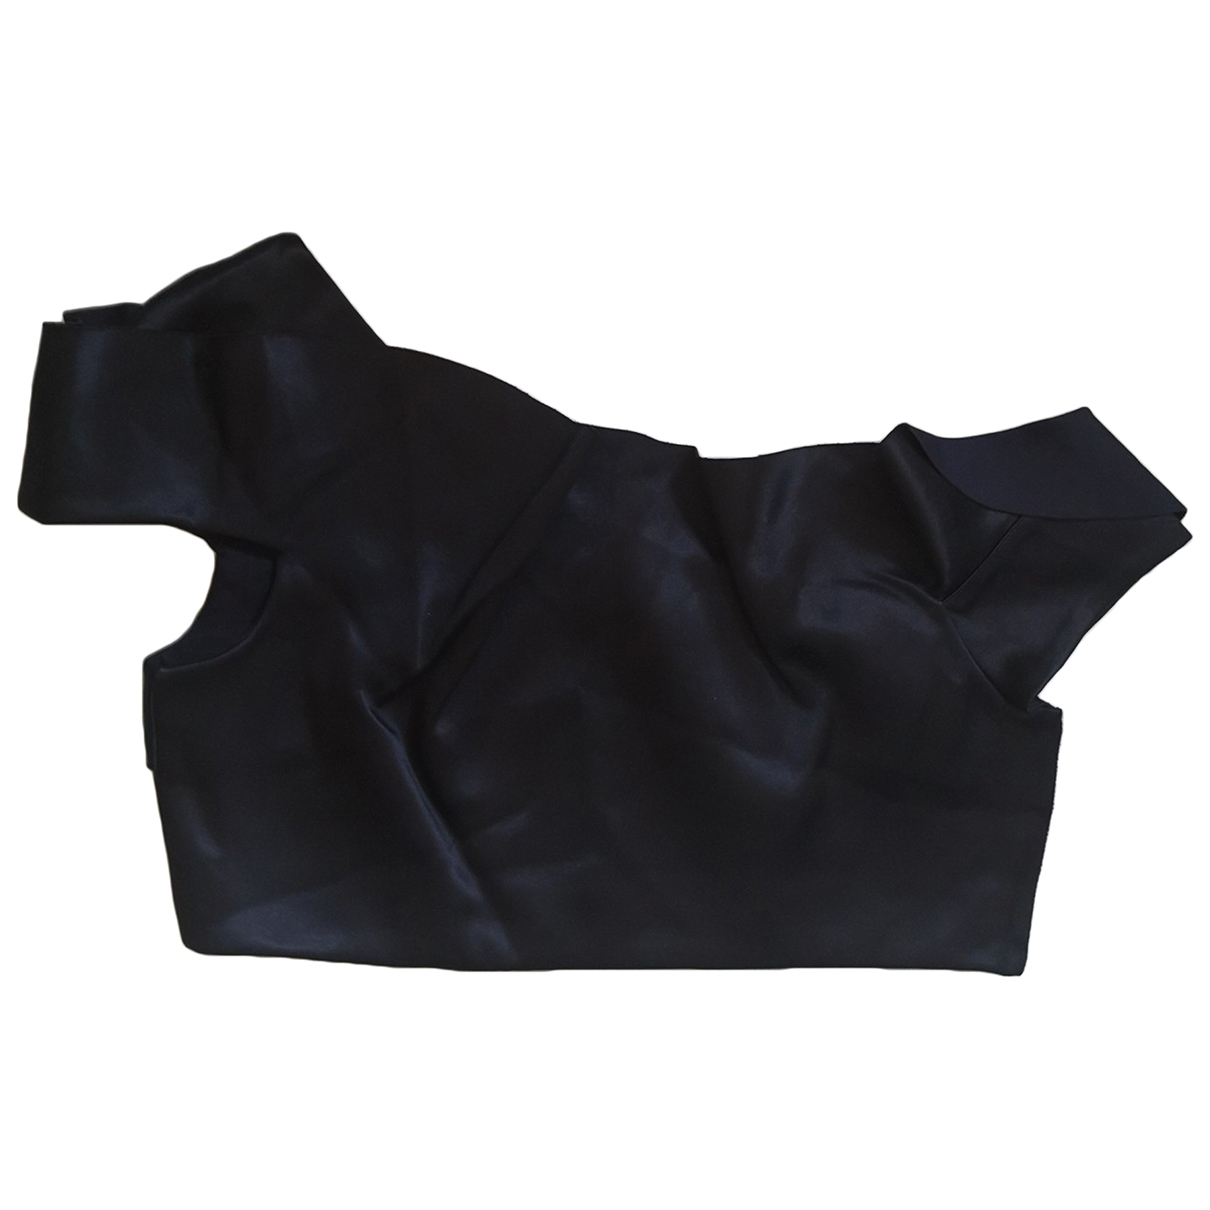 H&m Conscious Exclusive \N Black  top for Women 40 FR